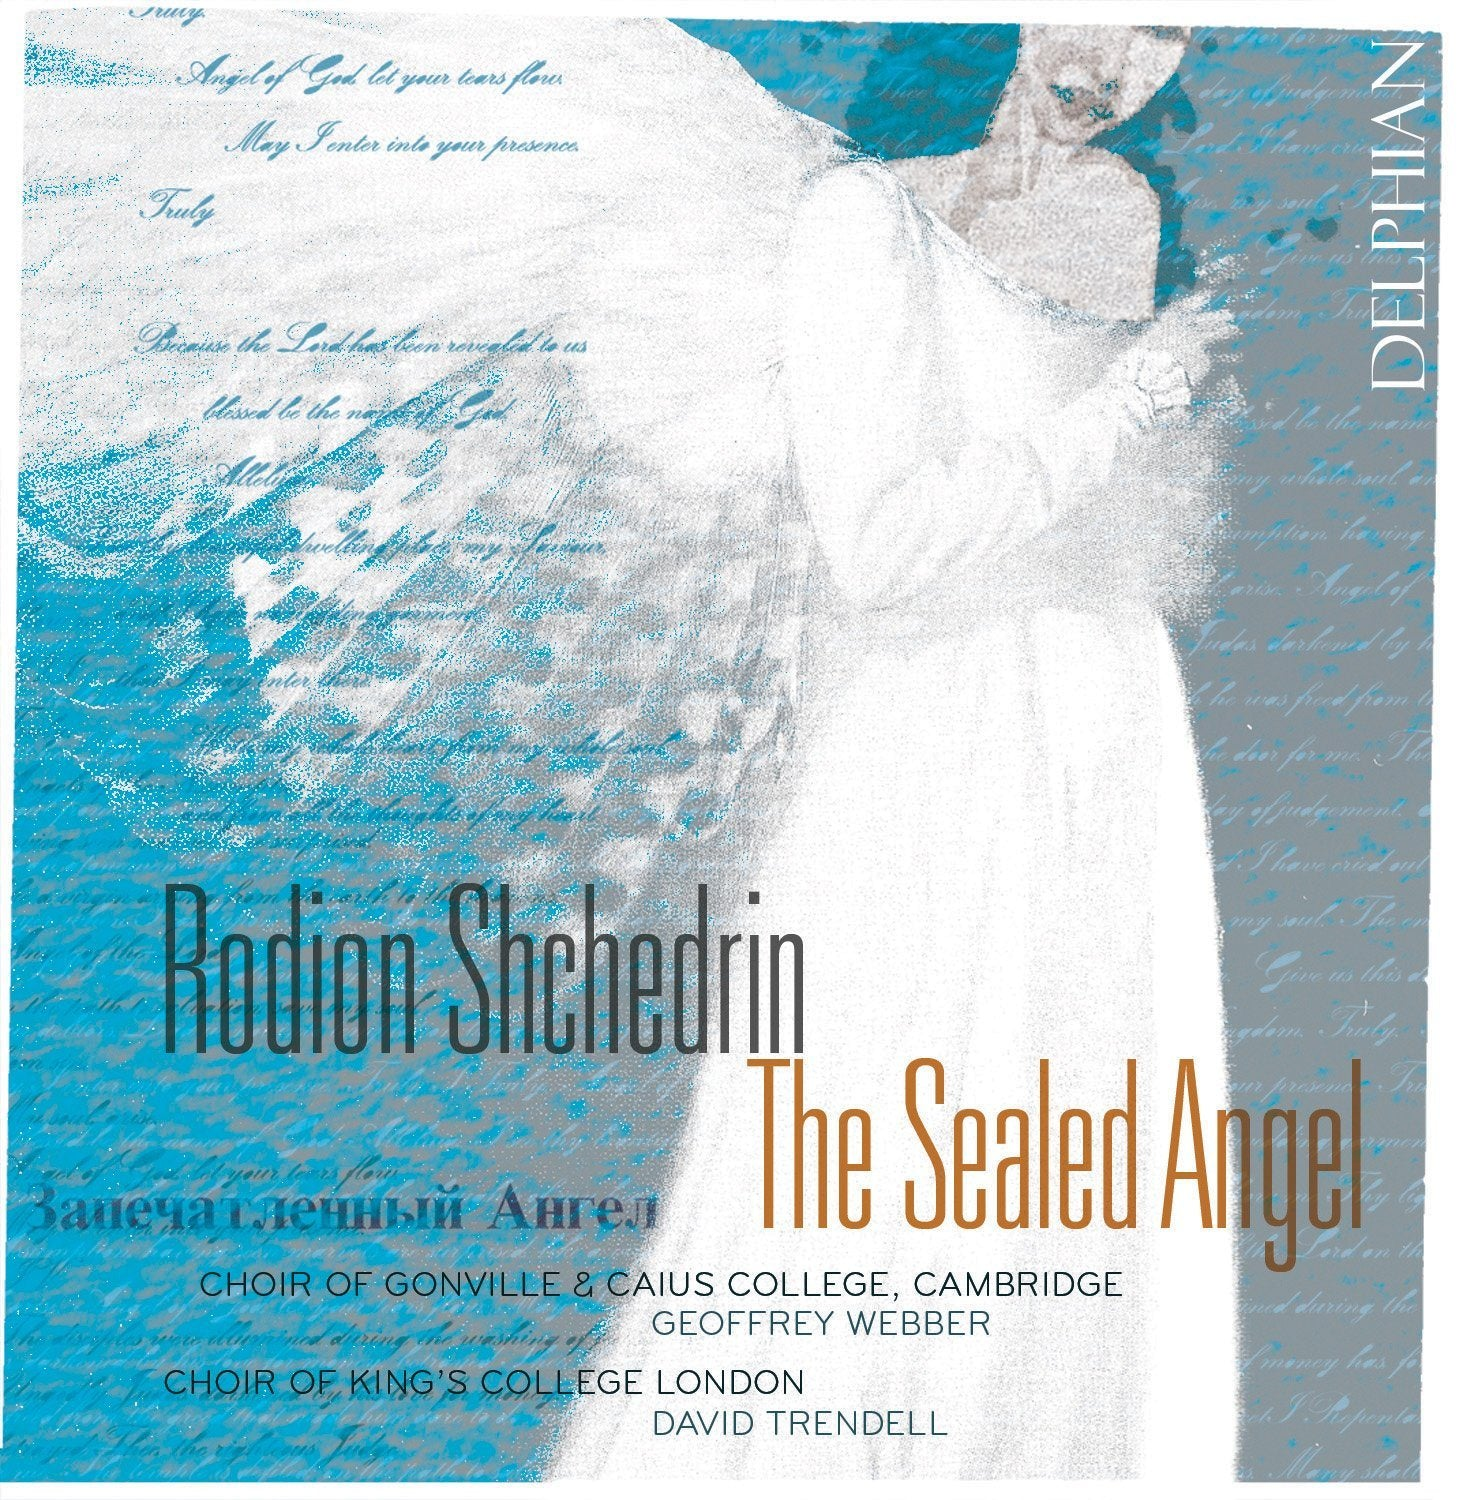 Shchedrin: The Sealed Angel CD Delphian Records